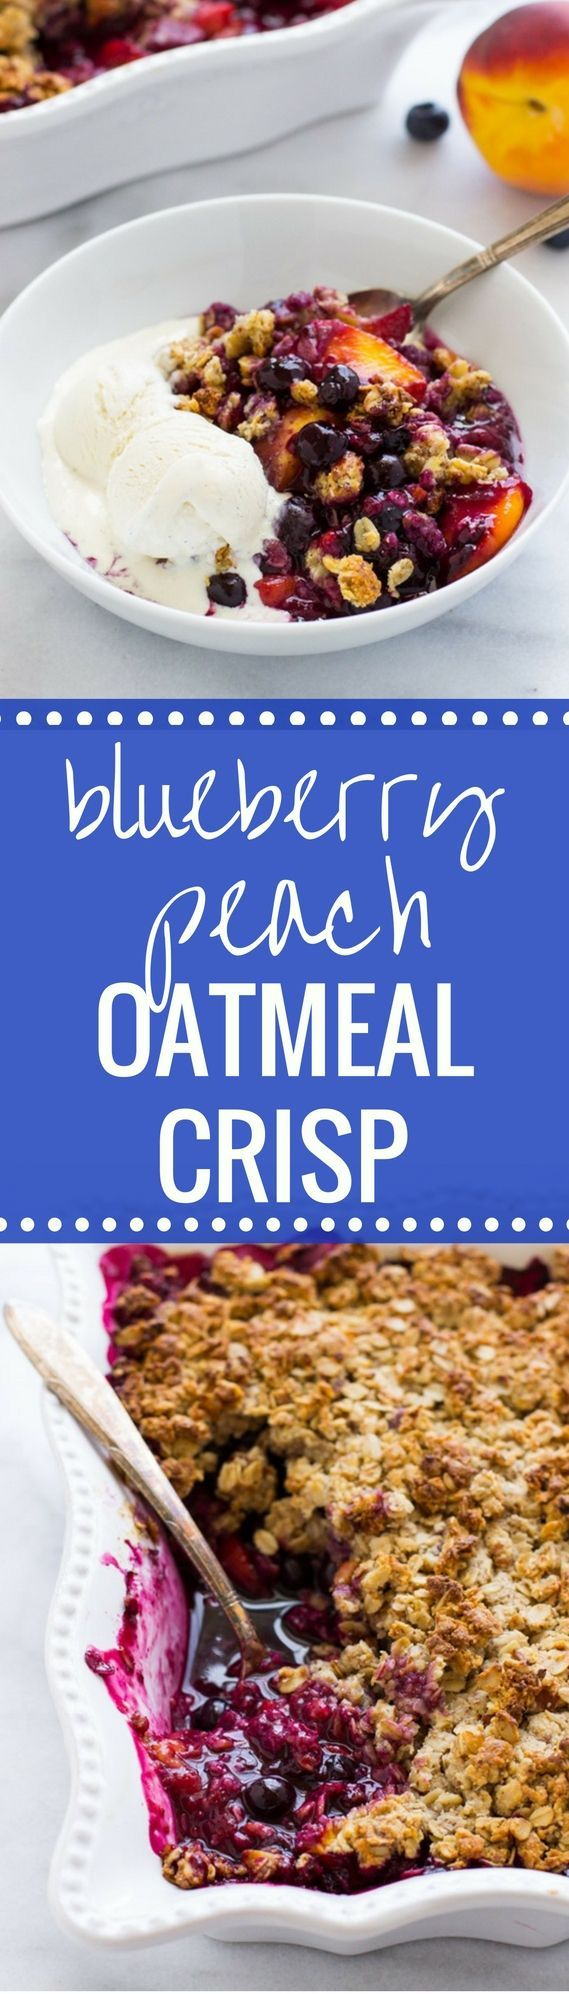 Blueberry Peach Oatmeal Crisp- super delicious, easy to make and refined sugar-free! (gluten-free and vegan option)